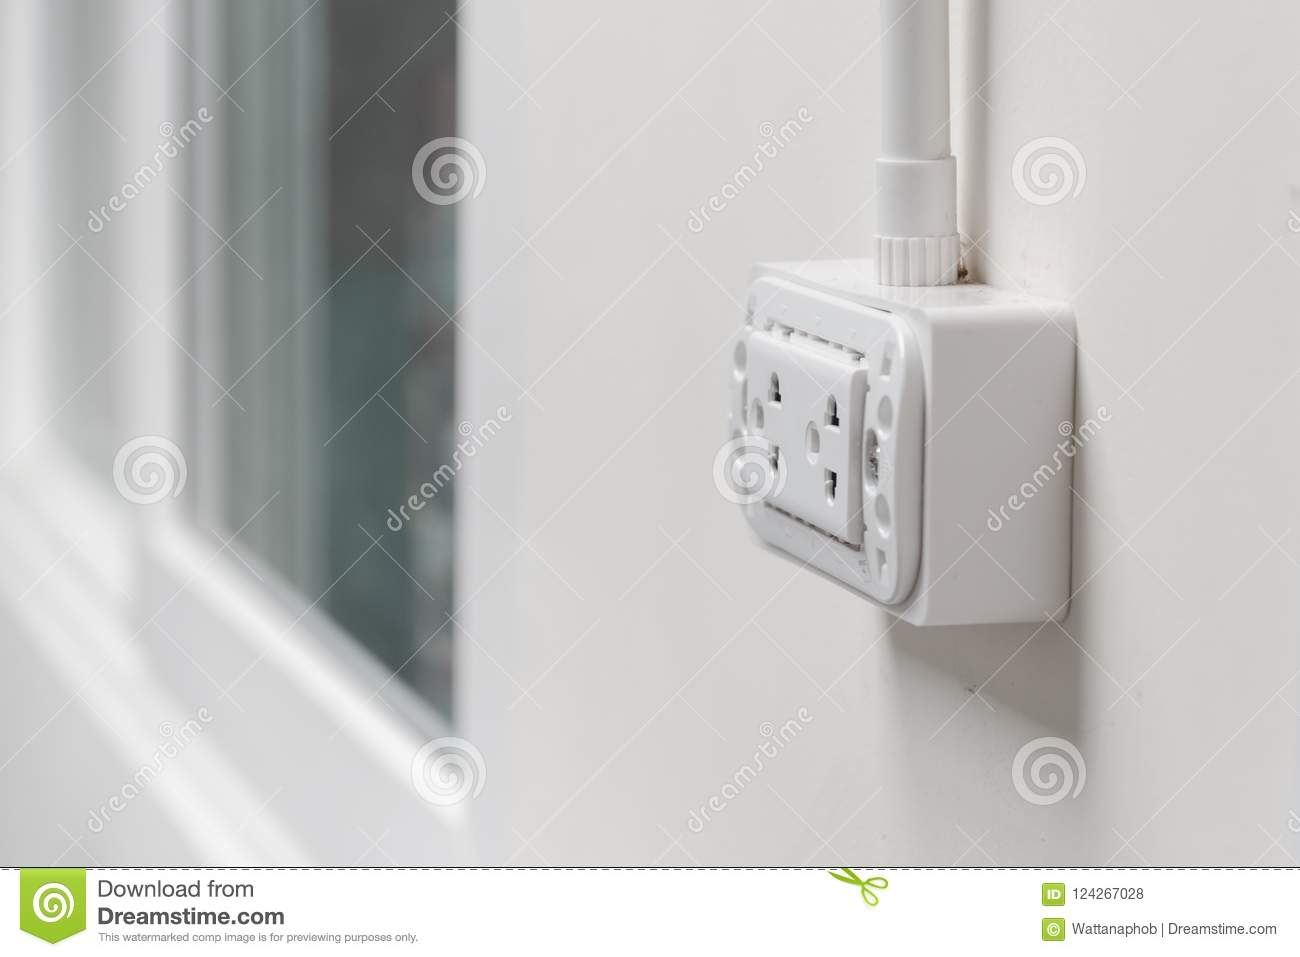 Home electrical system stock photo. Image of home, electric - 124267028